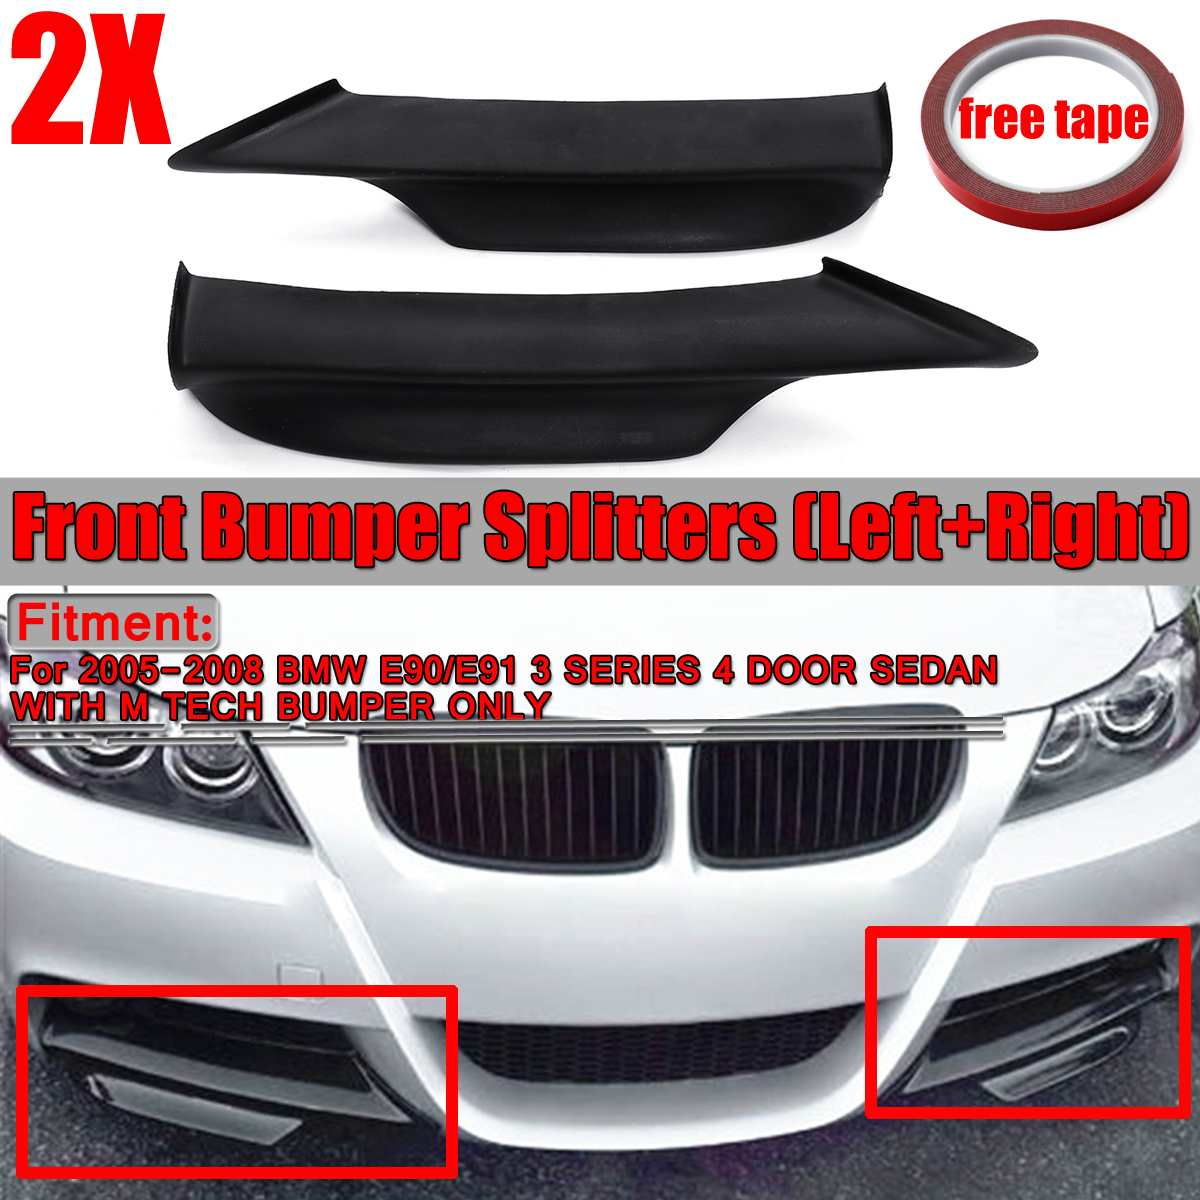 2x Black Car Front Bumper Lip Splitter For BMW E90 E91 3 Series 4Dr Sedan M-Tech 2005 2006 2007 2008 Bumper Spoiler Diffuser Lip